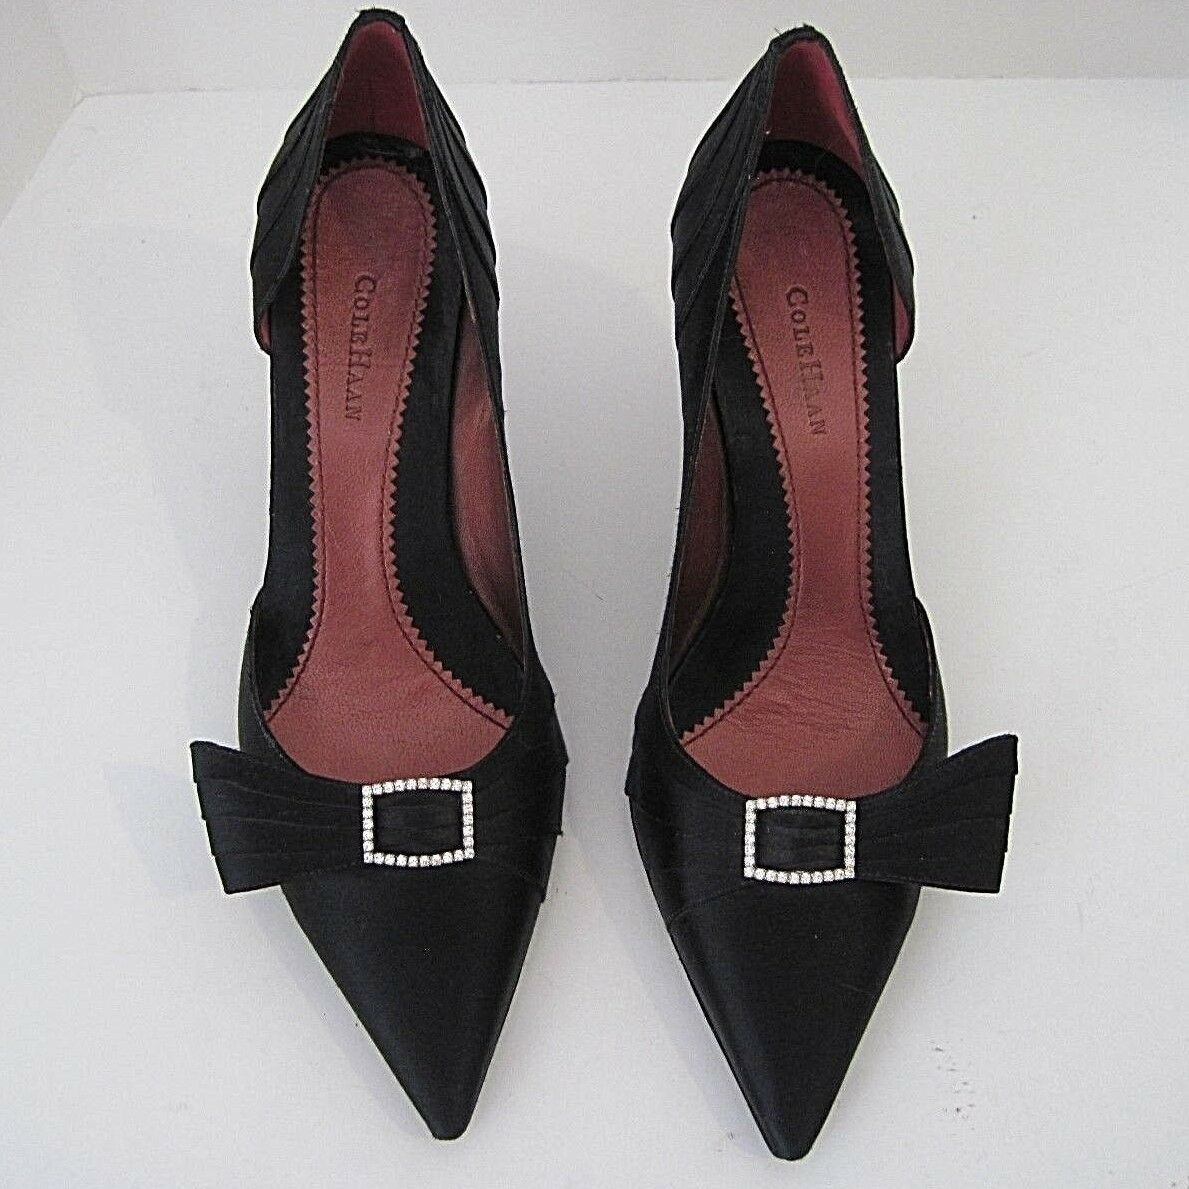 COLE HAAN D'ORSAY BLACK SATIN & RHINESTONE EVENING/FORMAL SIZE PUMPS SIZE EVENING/FORMAL 7 1/2 B c6829e